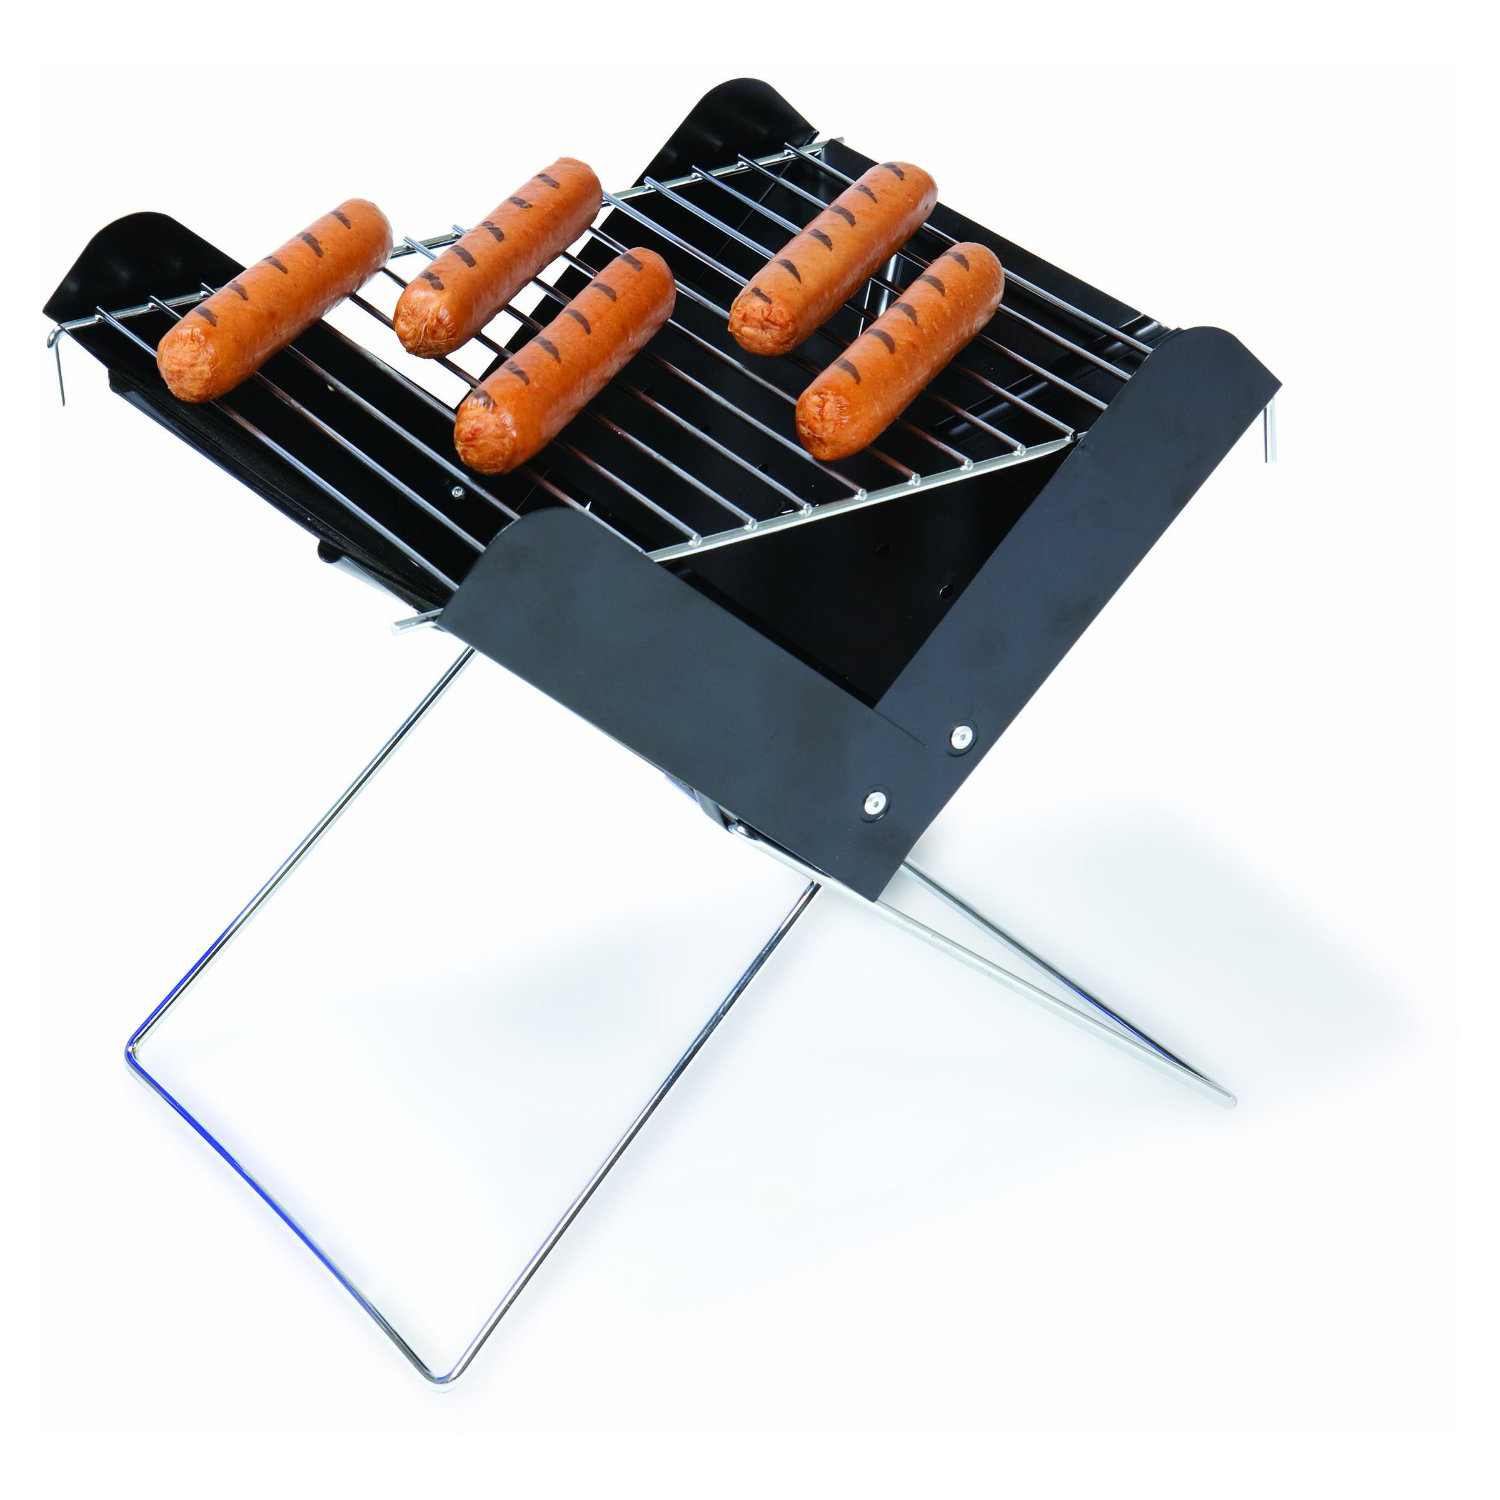 Picnic Time Portable Folding Charcoal BBQ Mini Grill with Carrying Tote